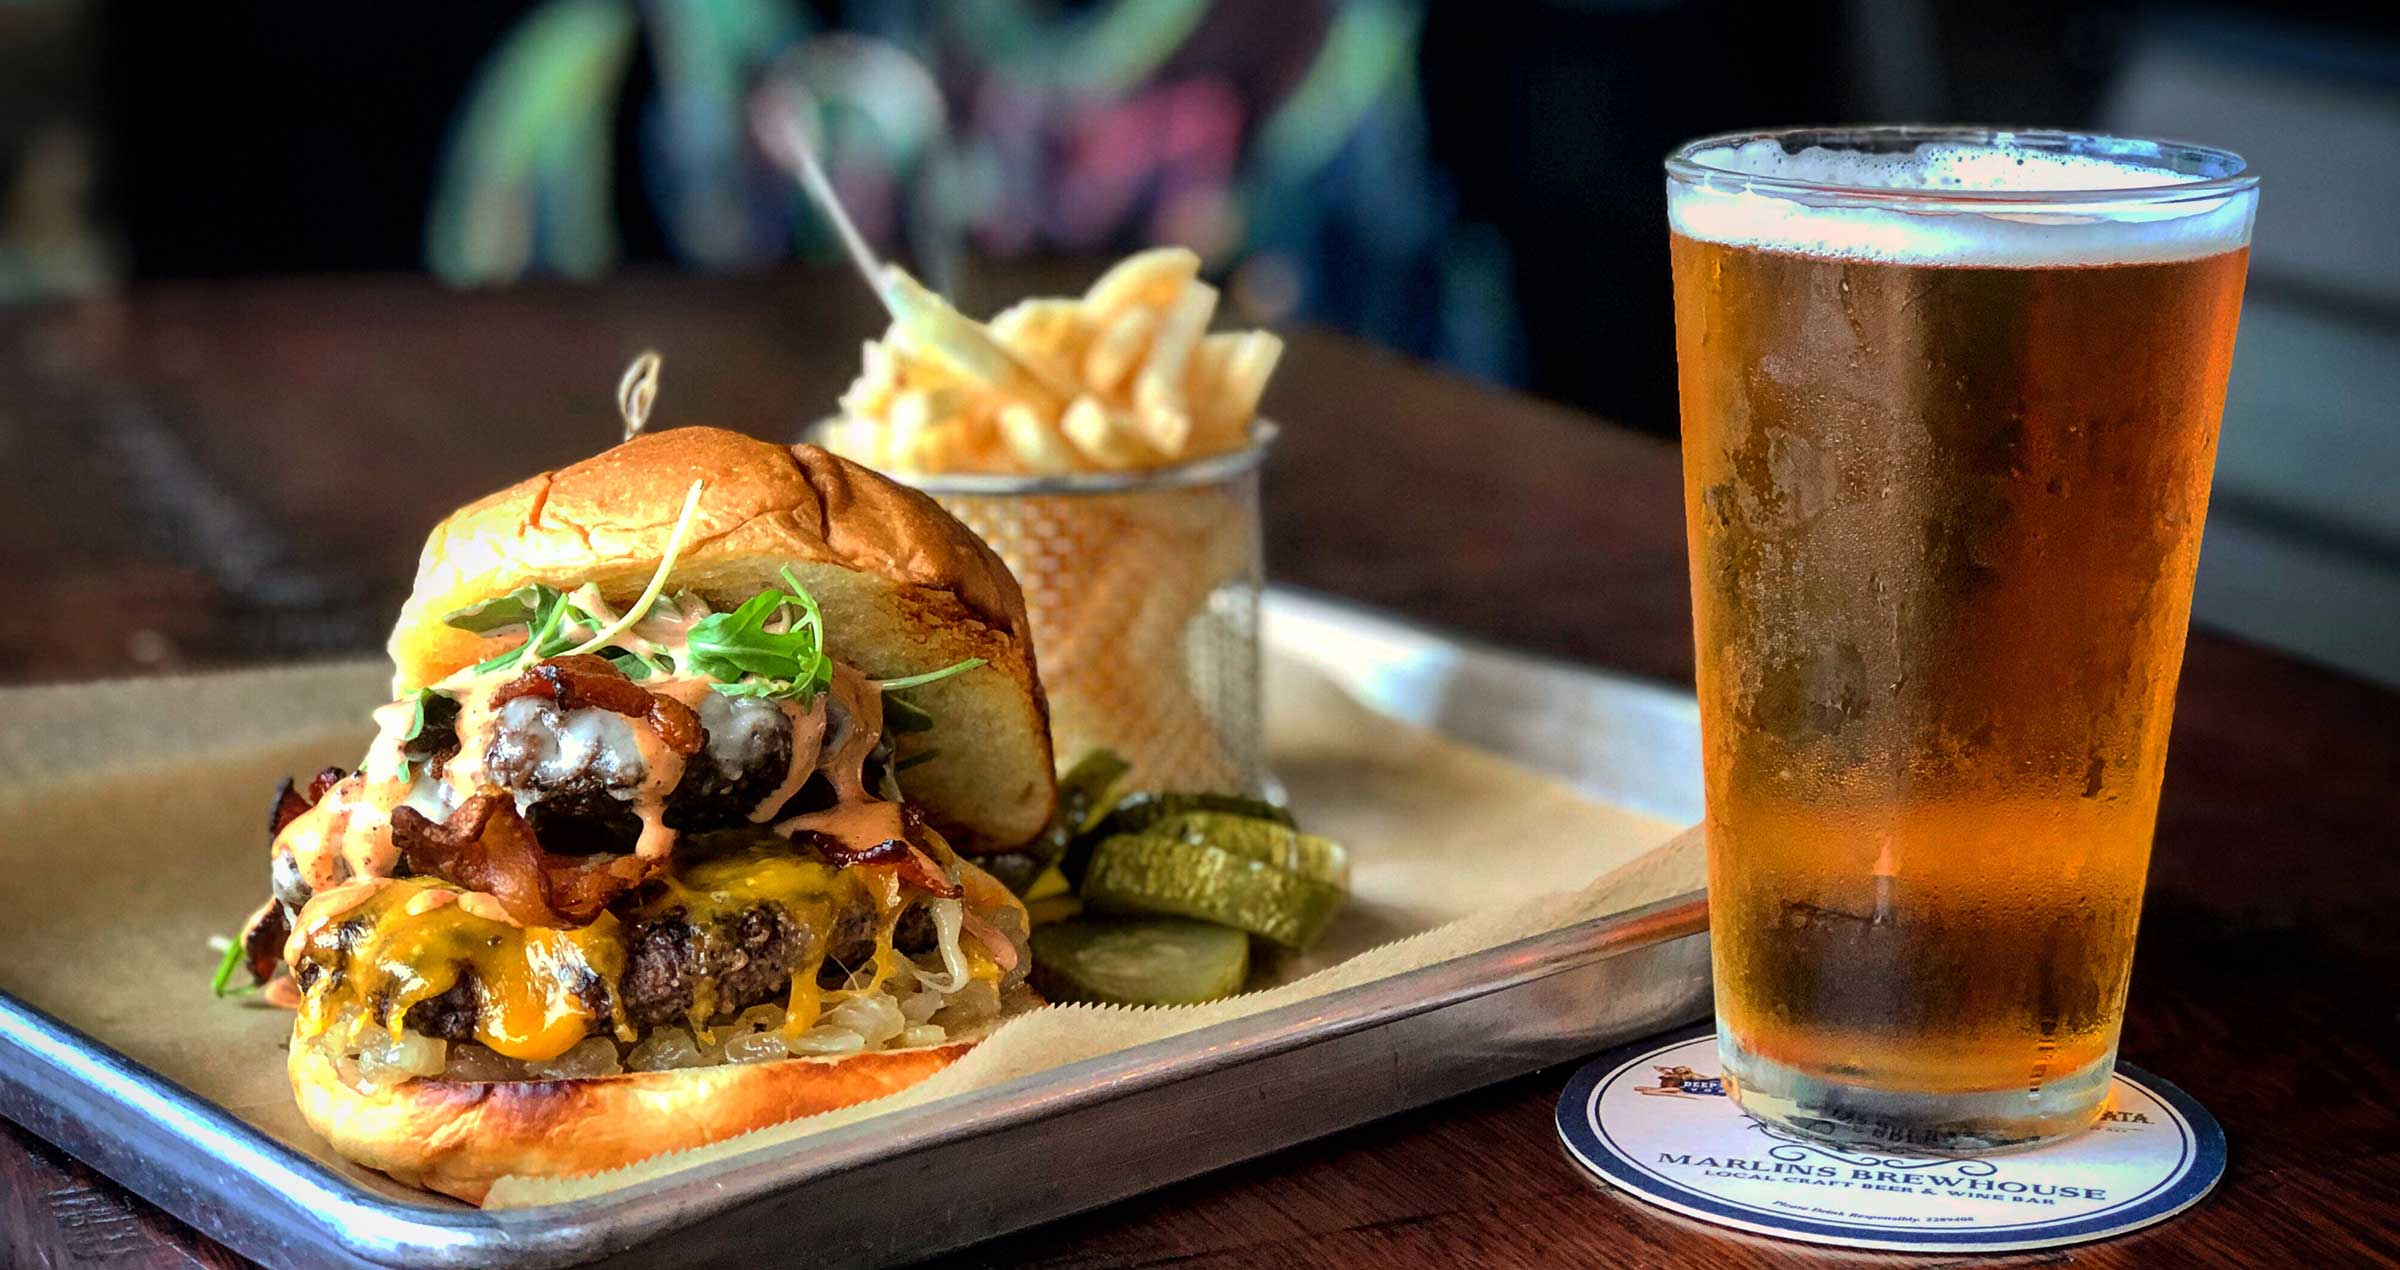 Bacon Cheese Hamburger with fries and a cold beer